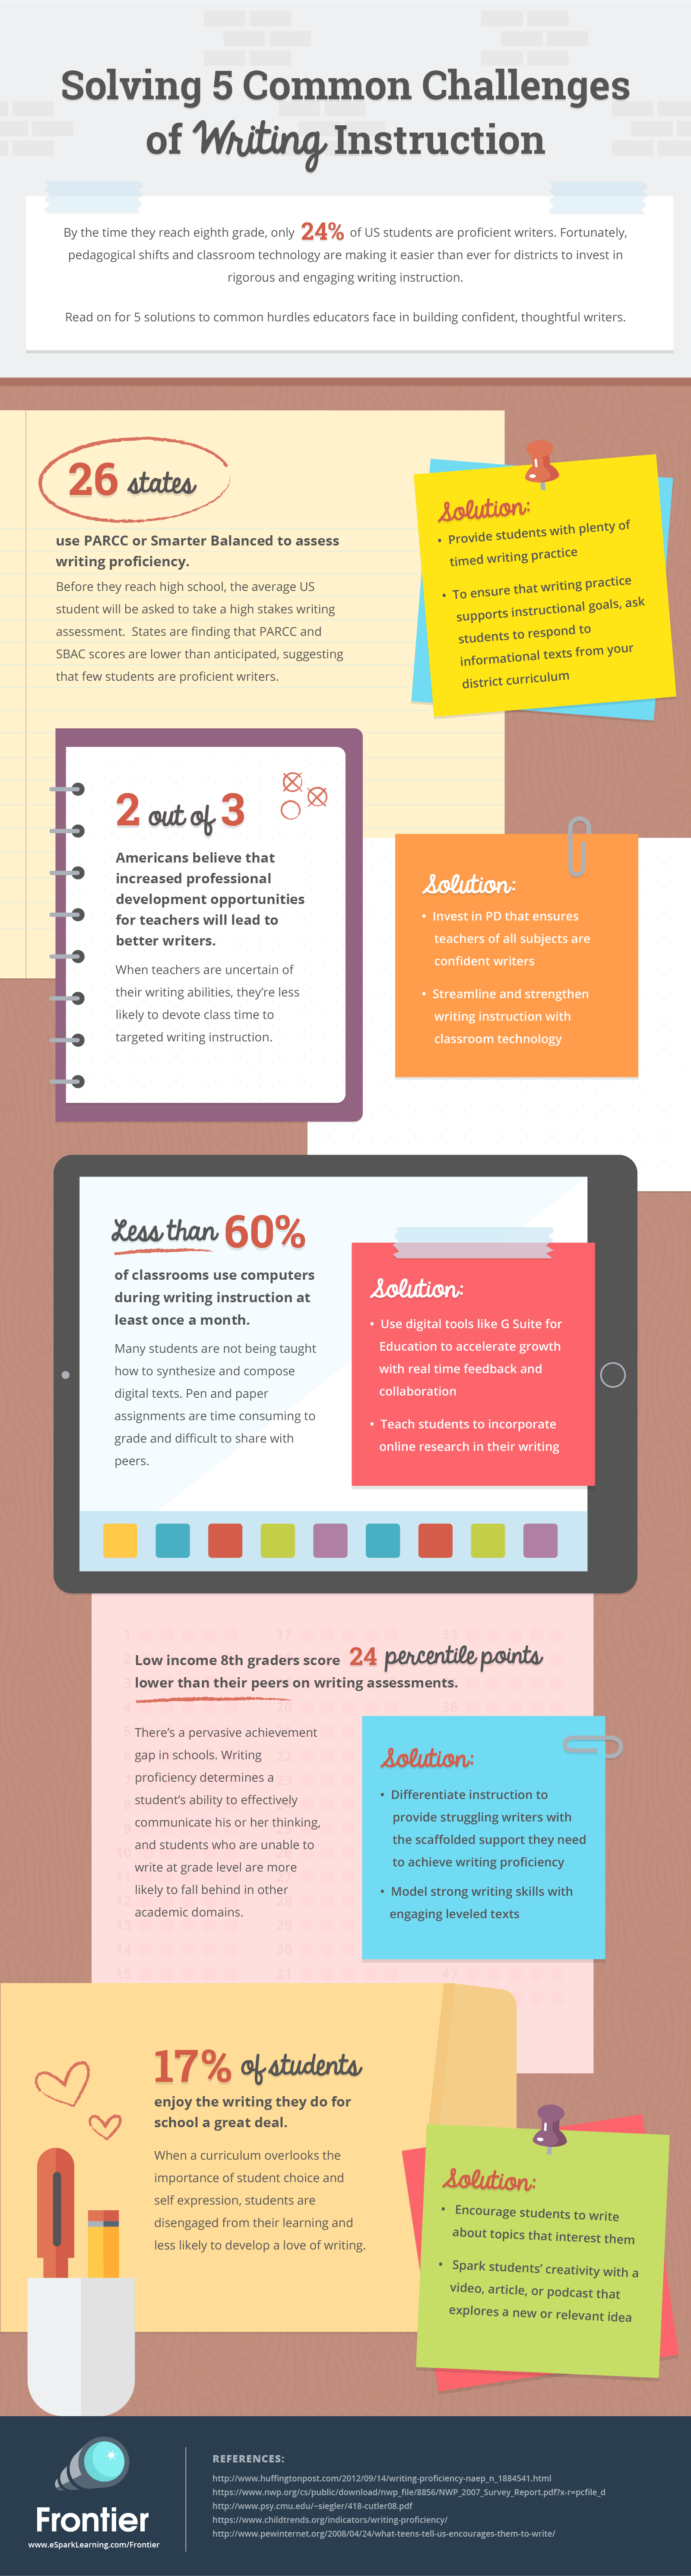 Solving 5 Common Challeneges of Writing Instruction Infographic